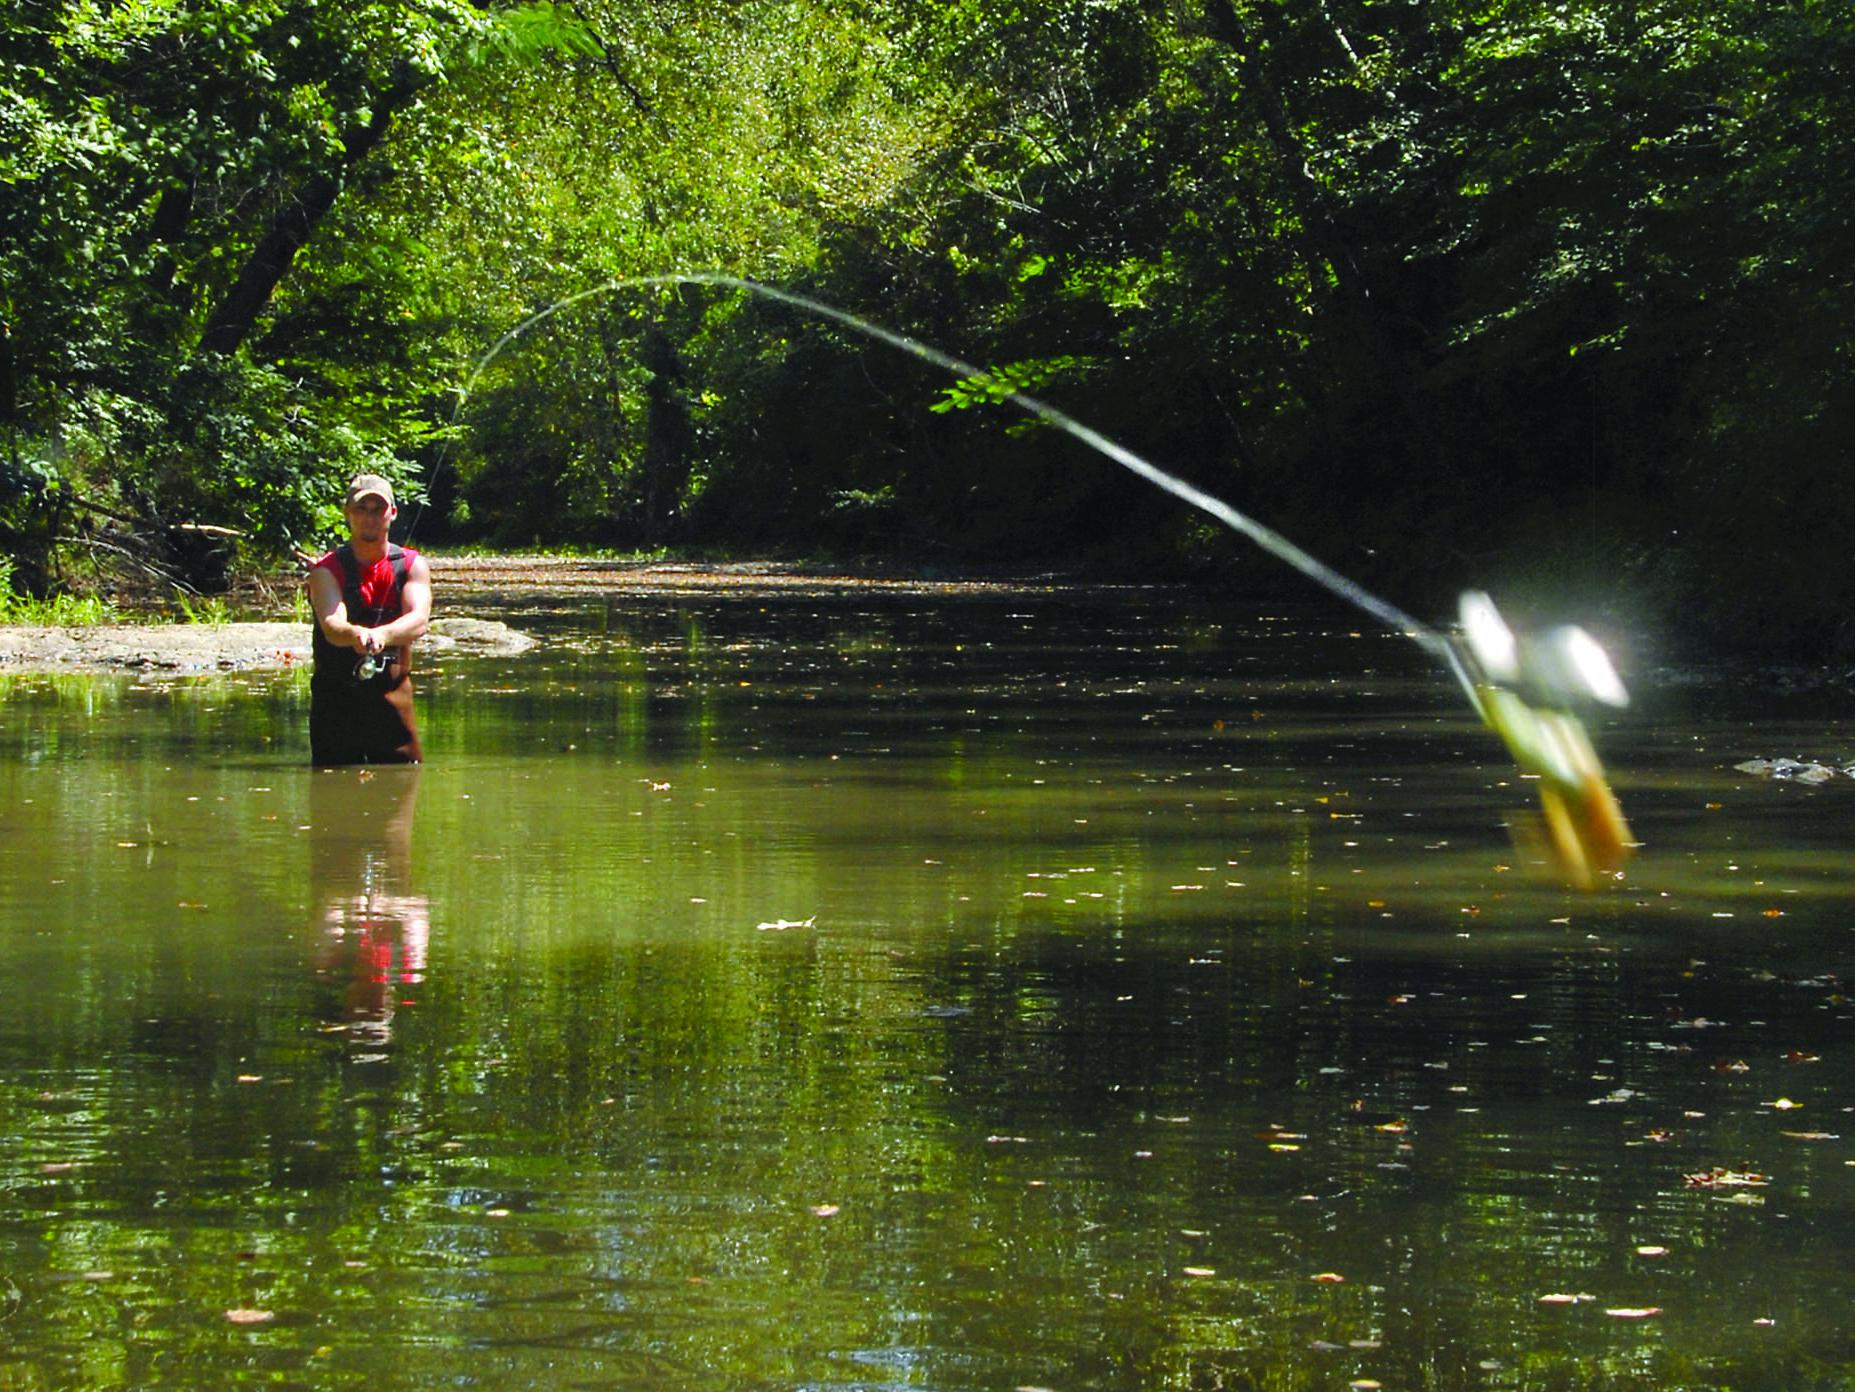 A fisherman in rubber waders stands in a small, quiet stream and casts a lure toward the viewer.